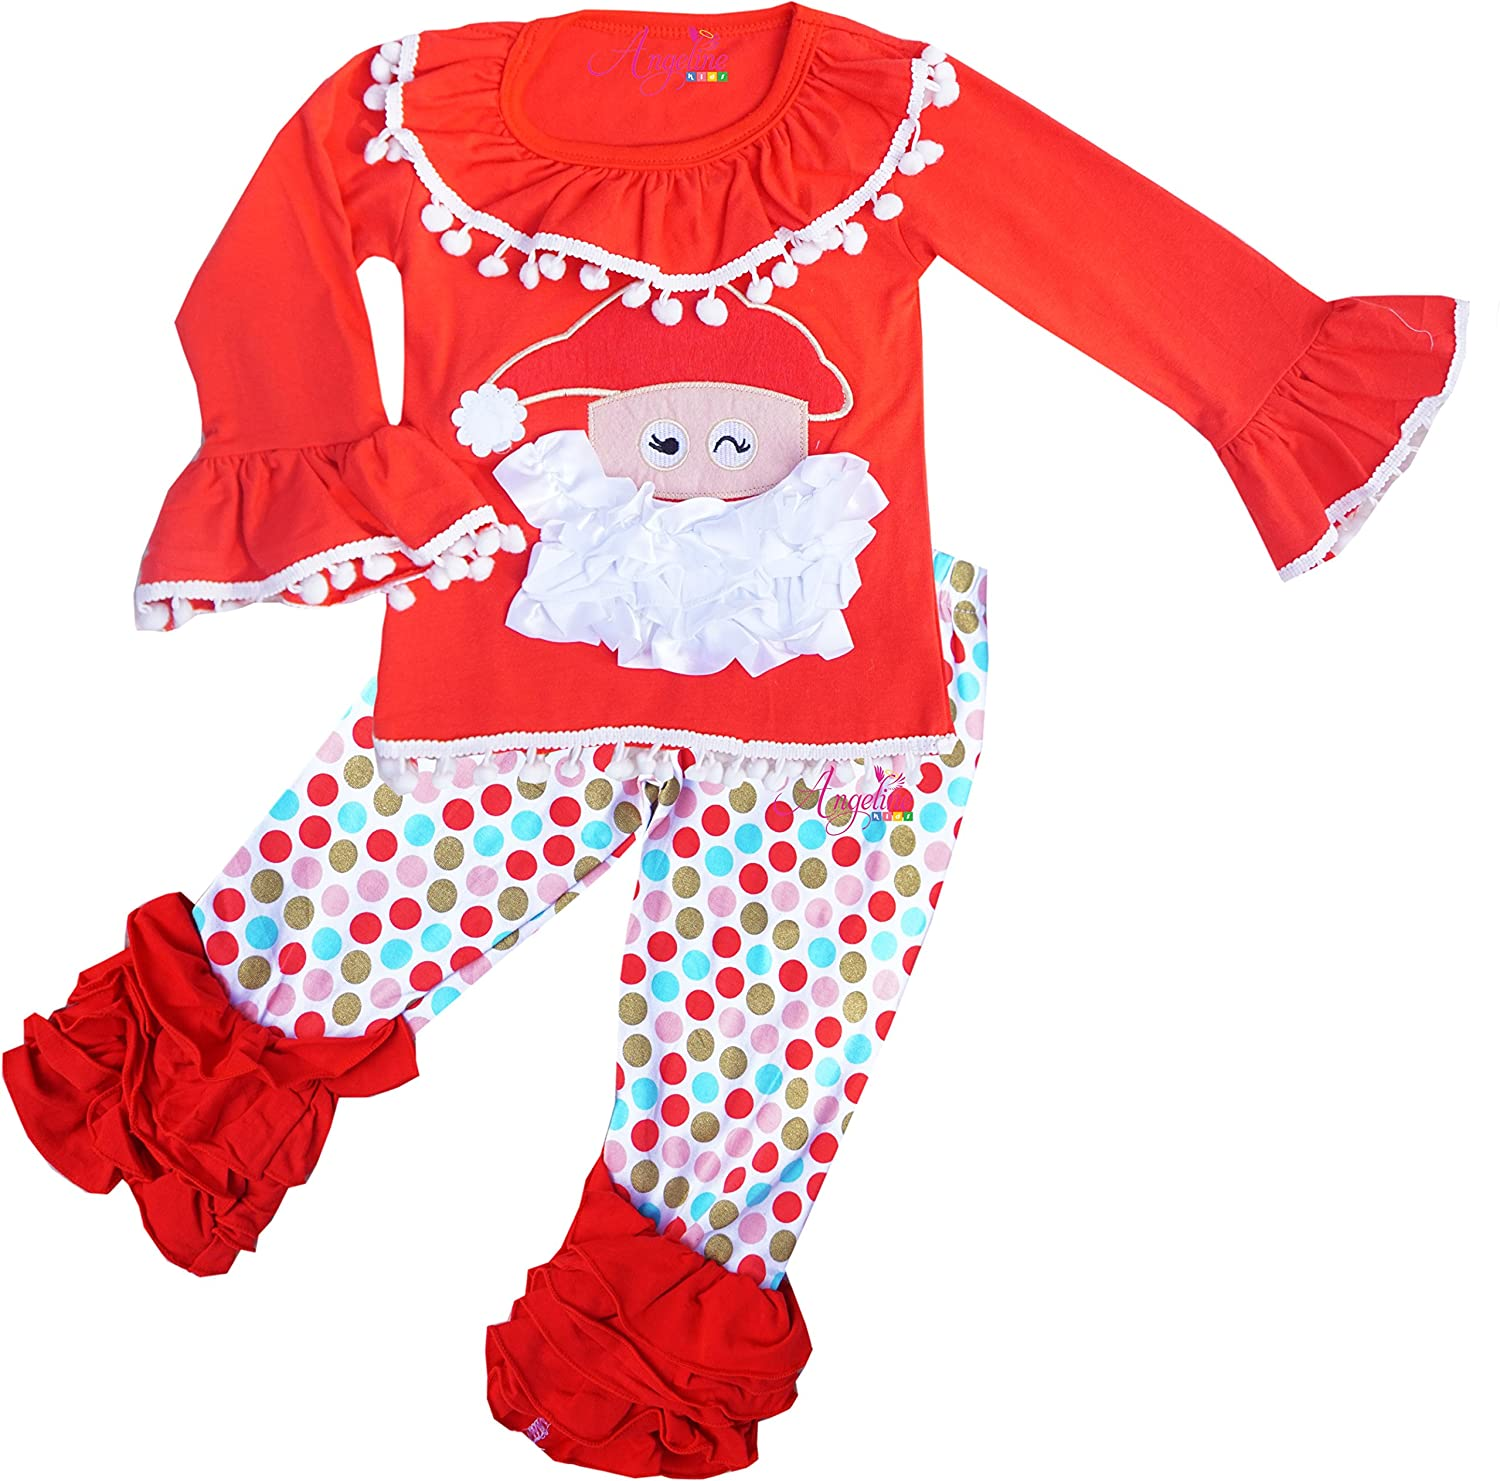 Girls Boutique Clothing Holiday Christmas Santa Clothing Set 7